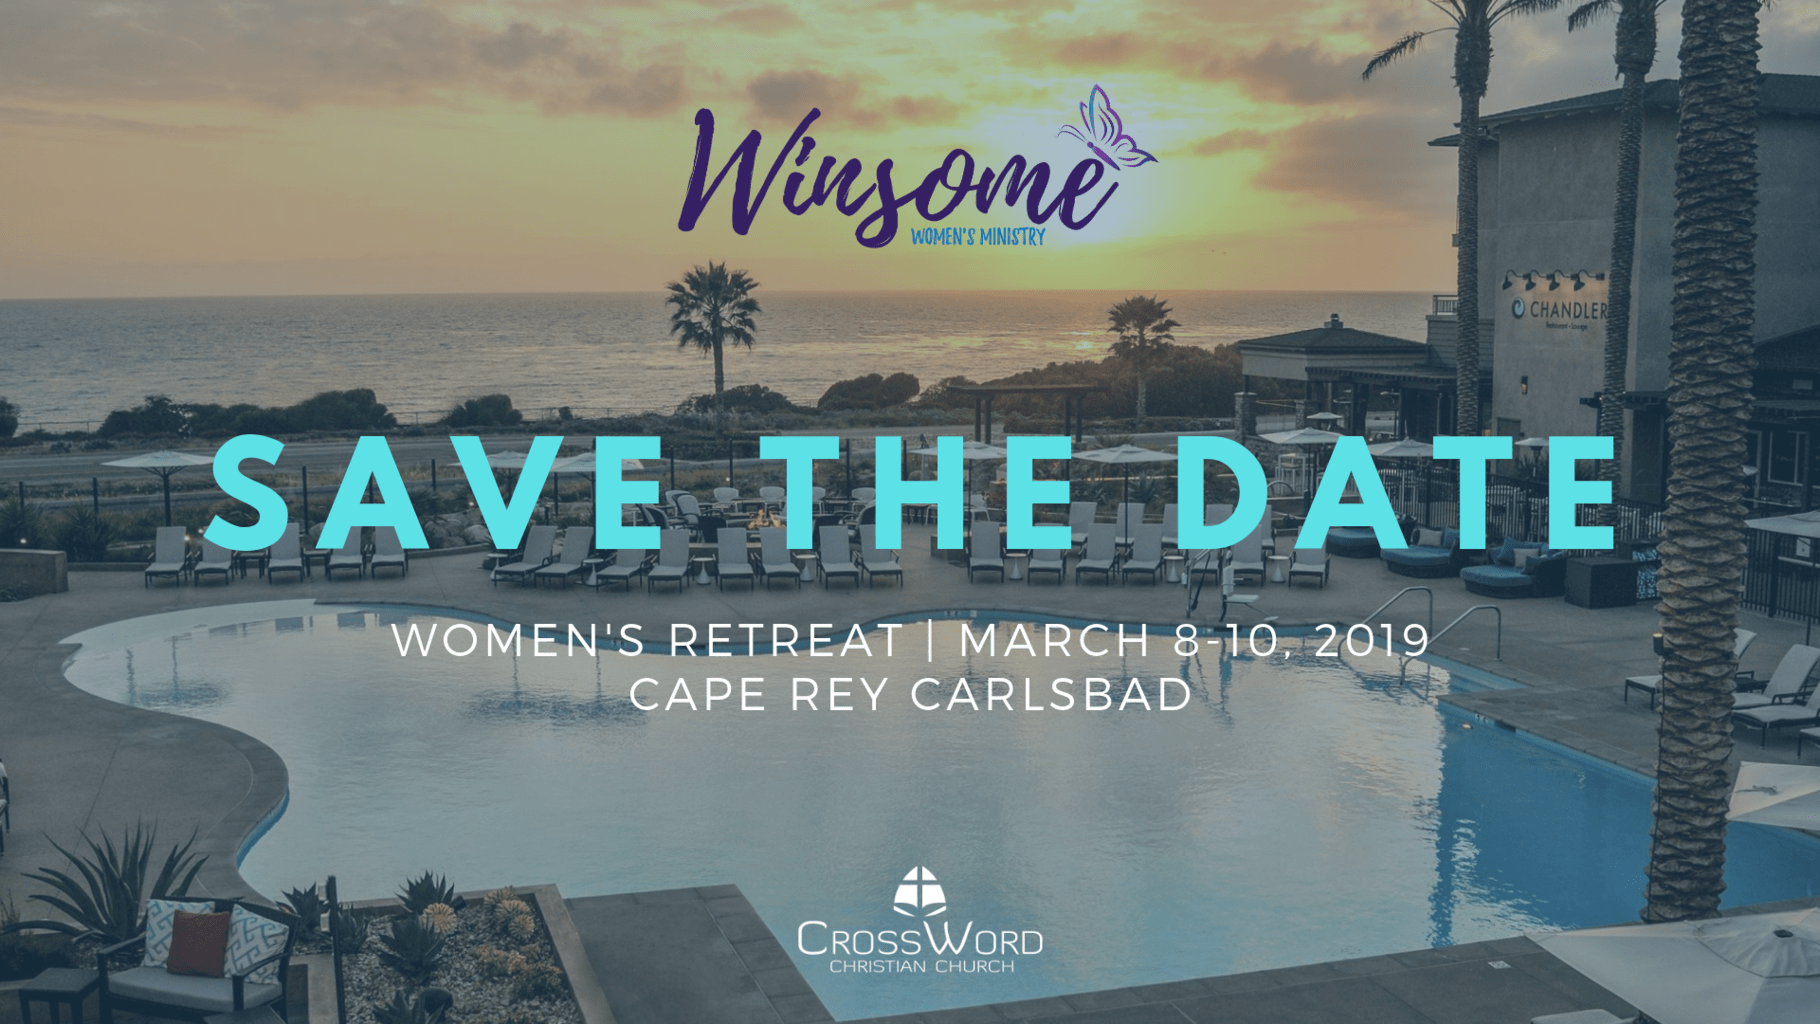 Winsome Women's Retreat 2019